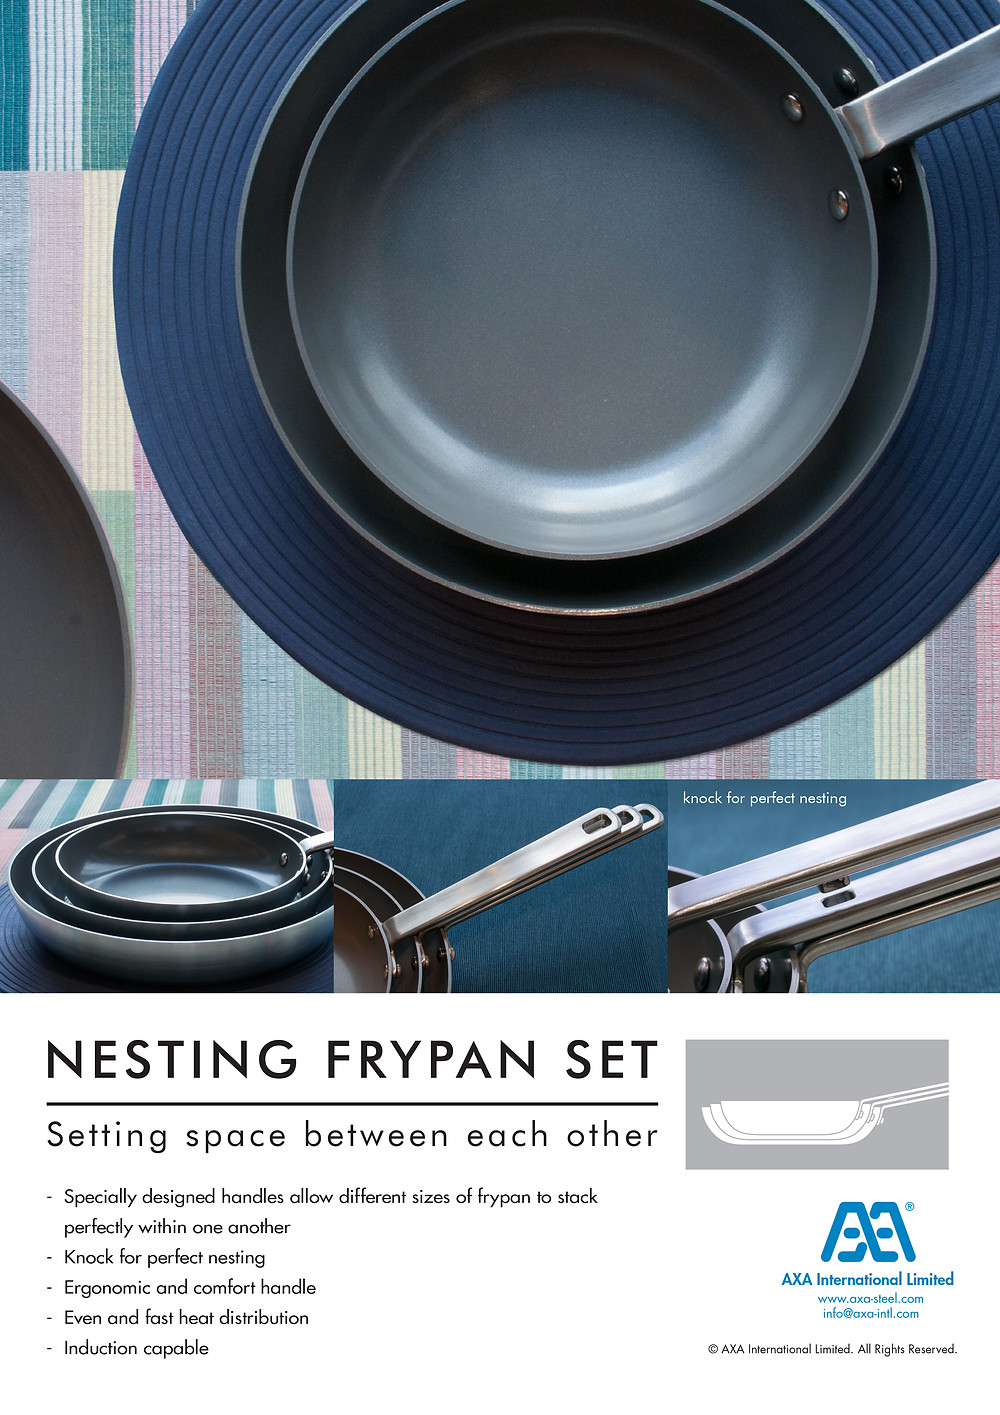 NESTING FRYPAN SET - Setting space between each other